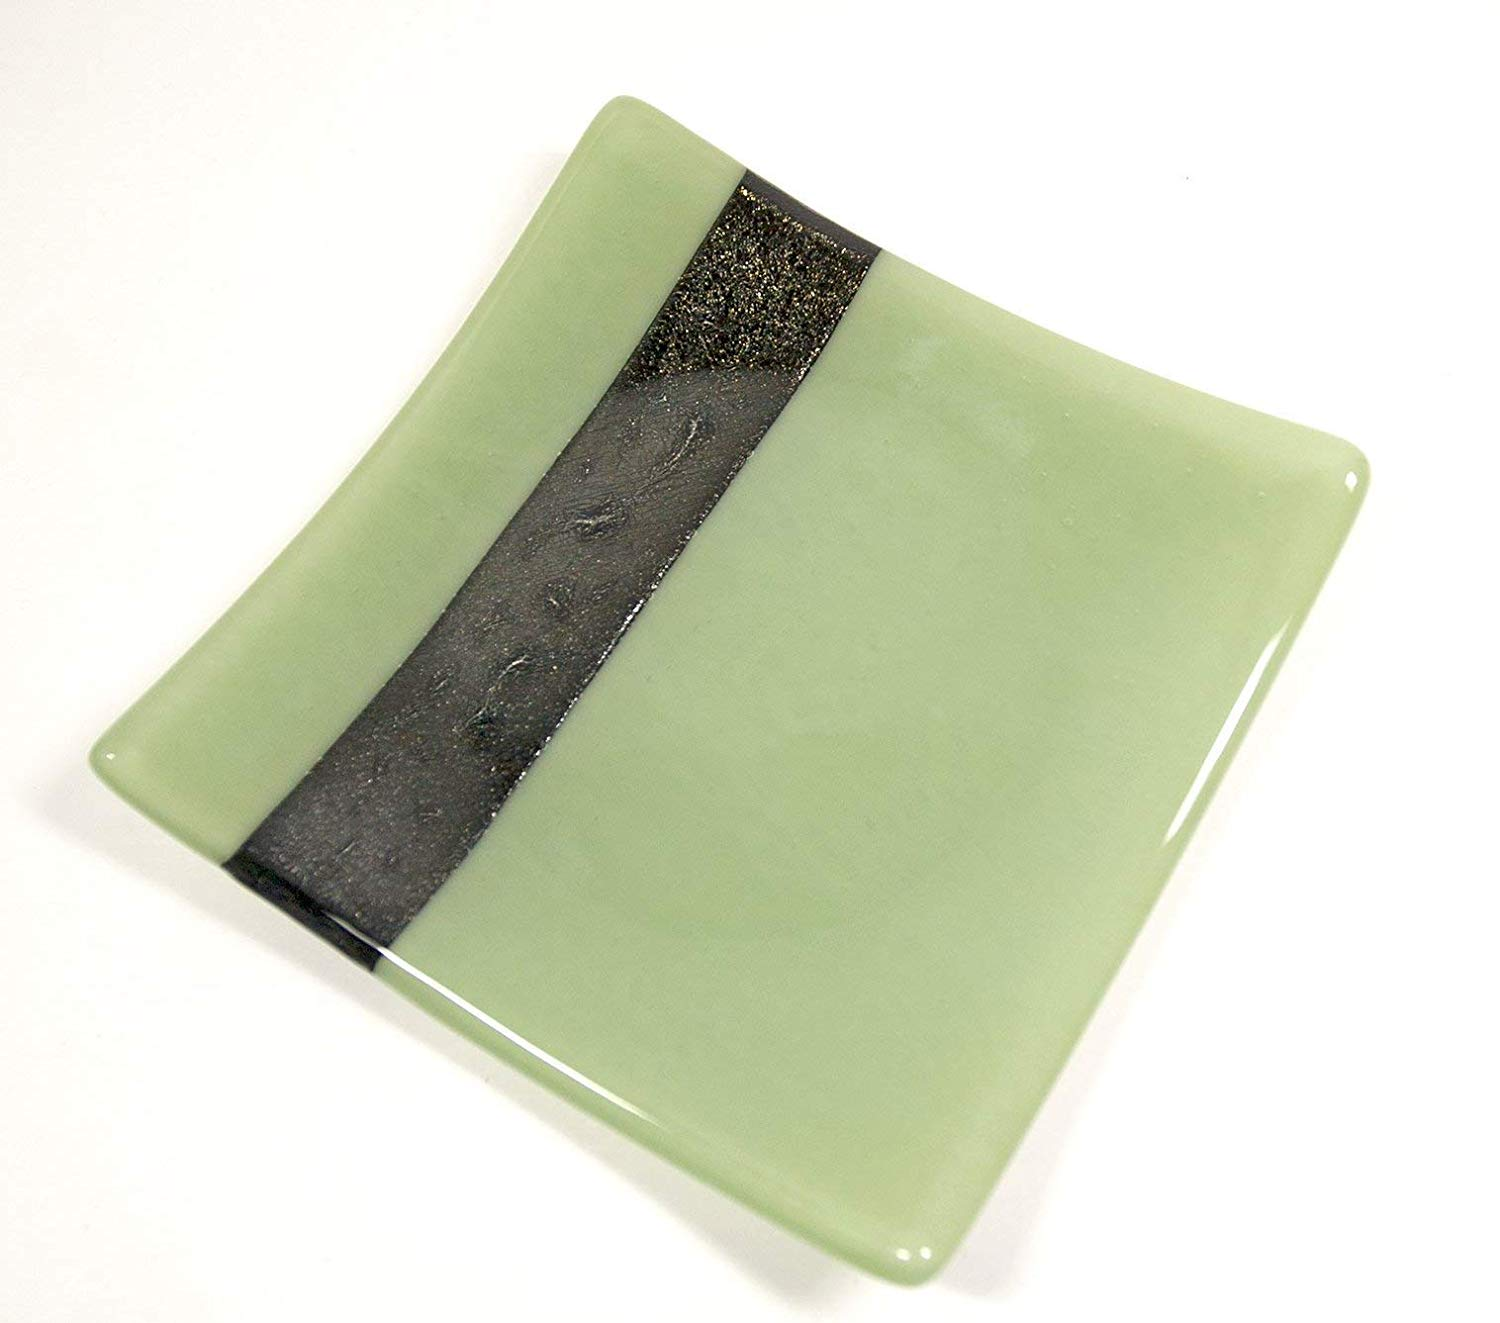 Square Candle Plate made from Green Fused Glass